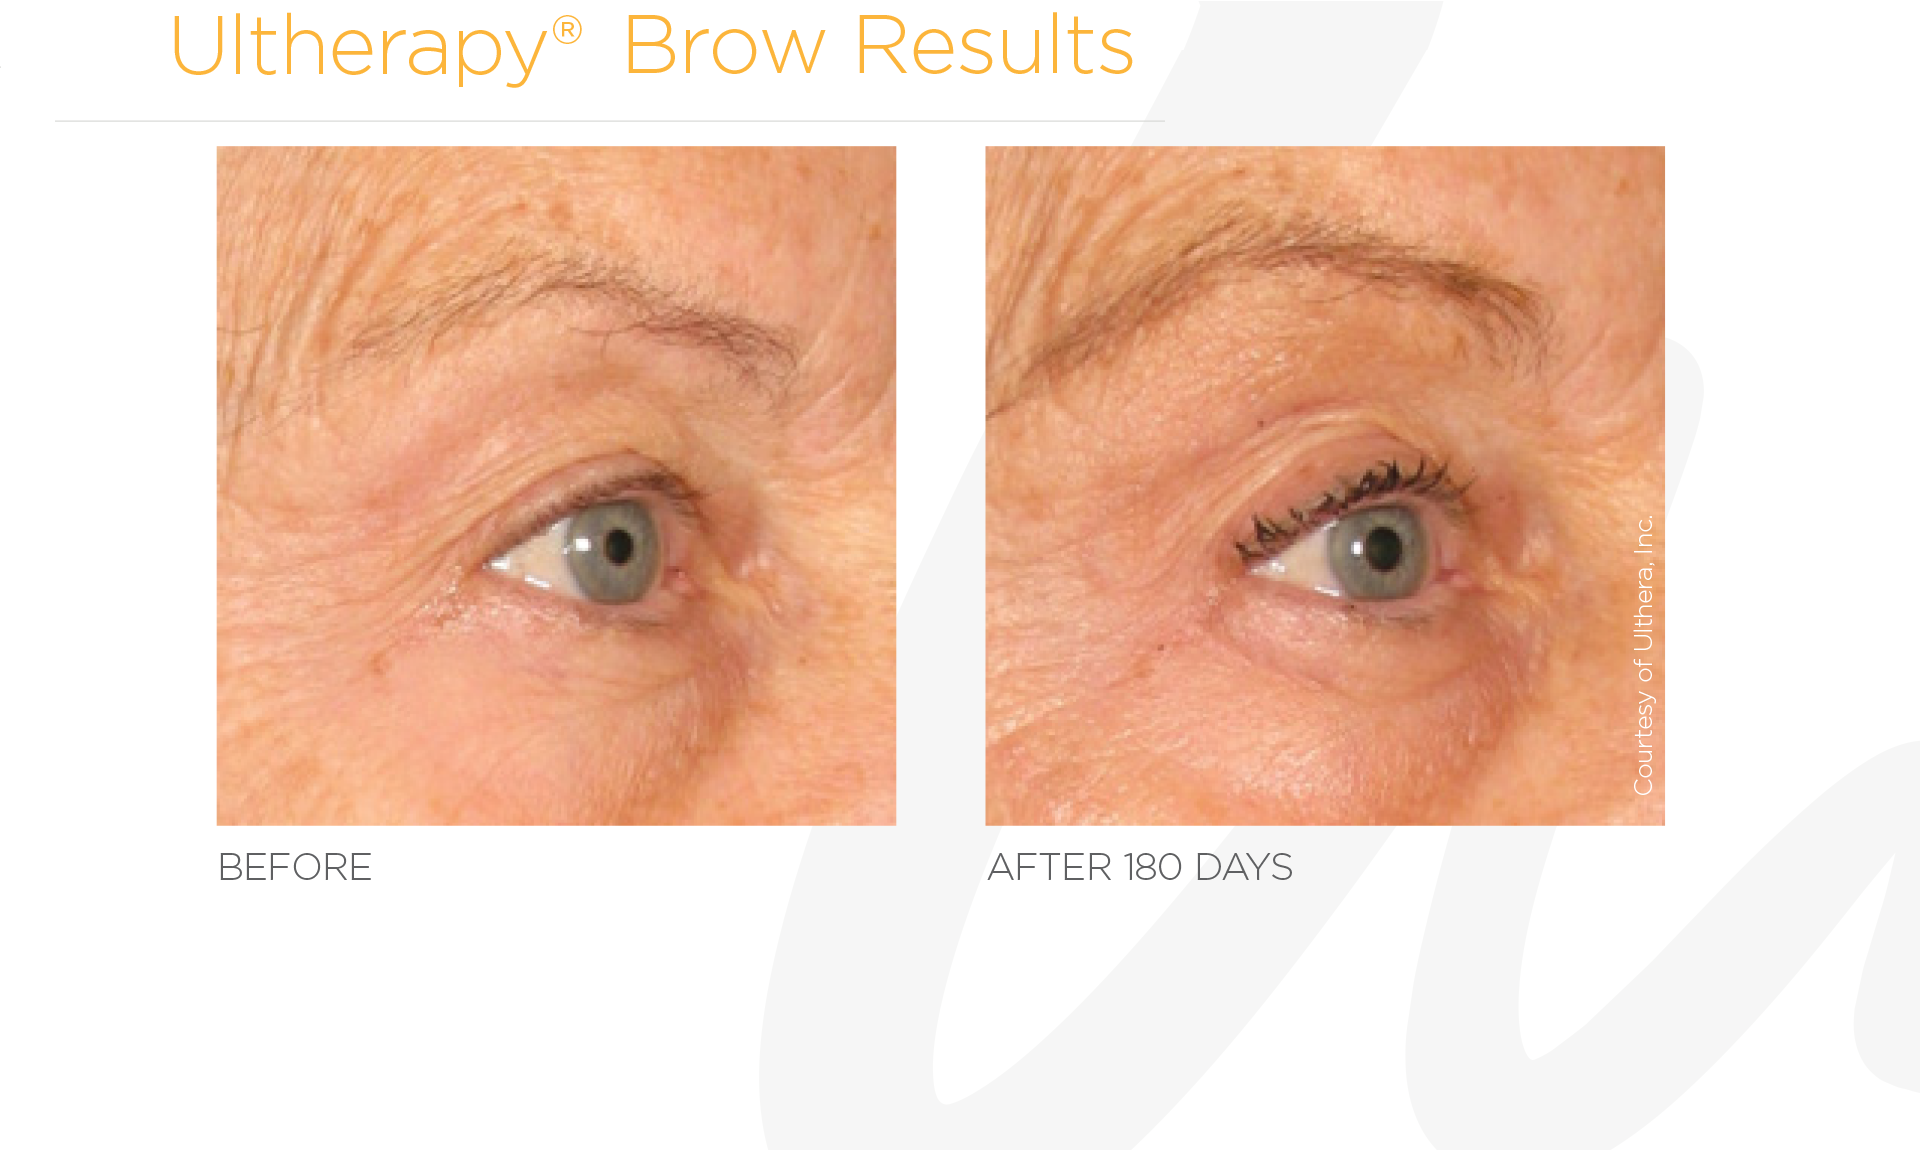 Ultherapy Brow Before And After Results